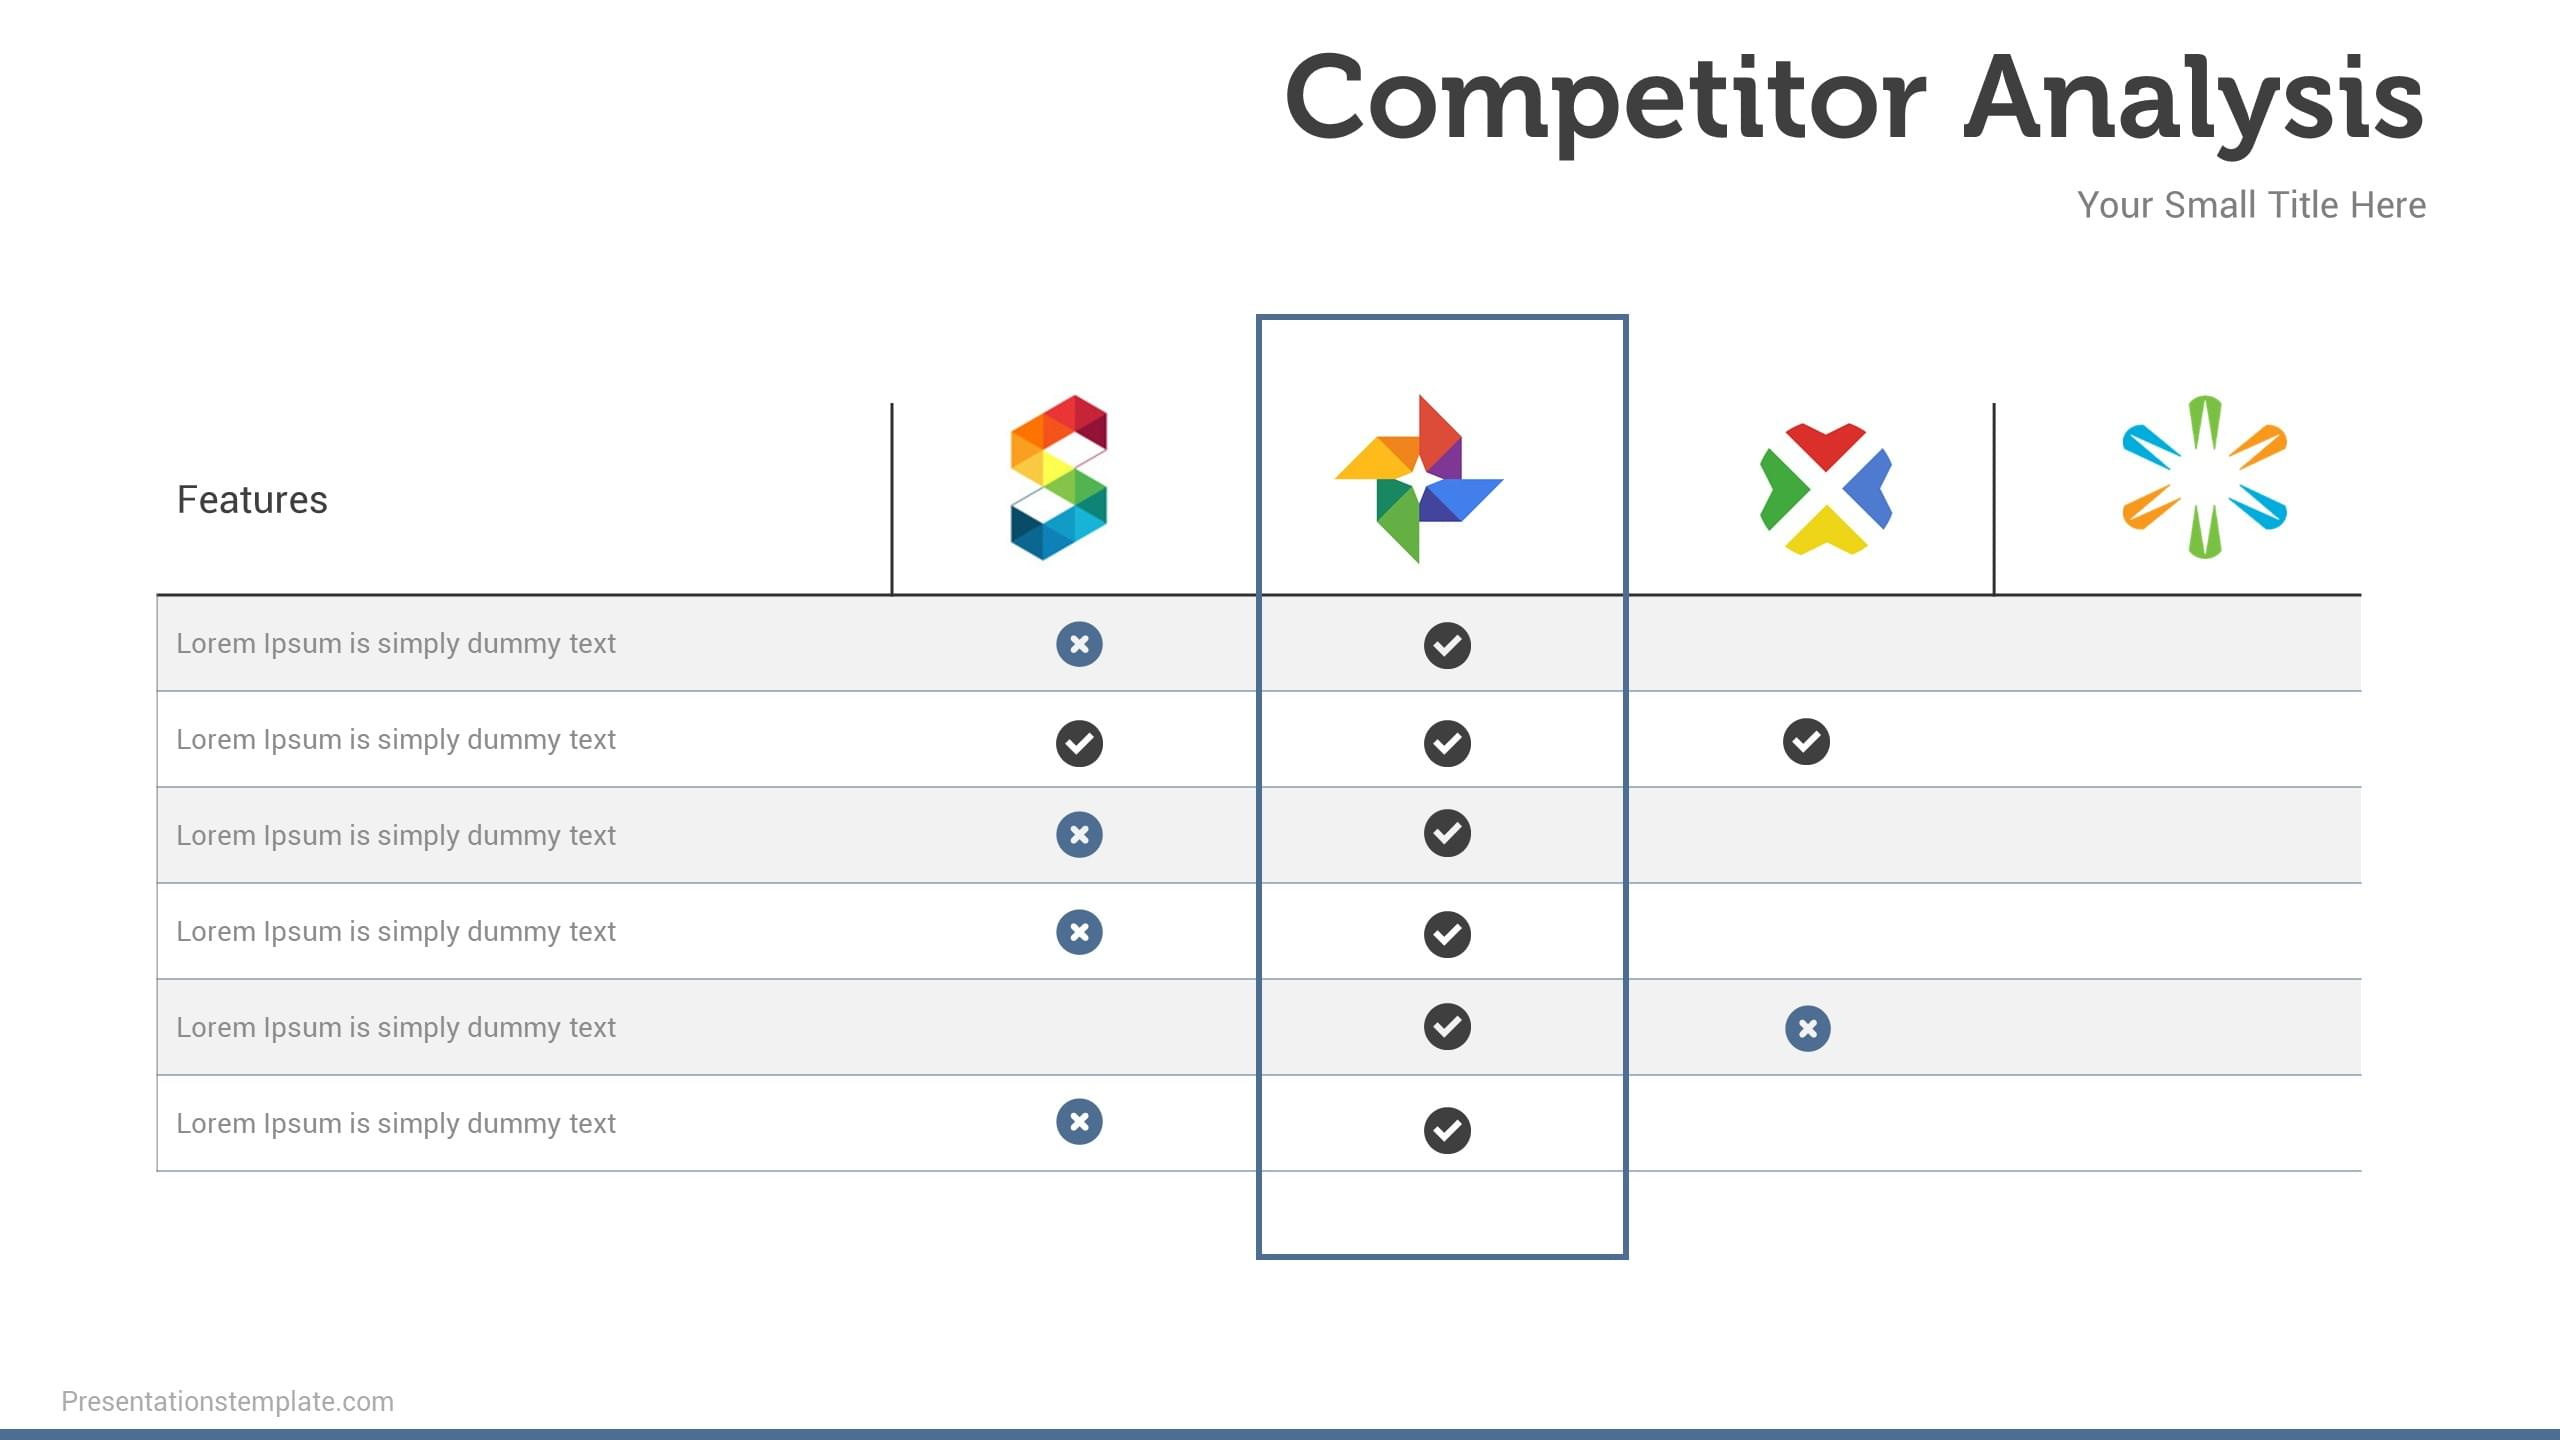 Competitor Analysis Presentation Template